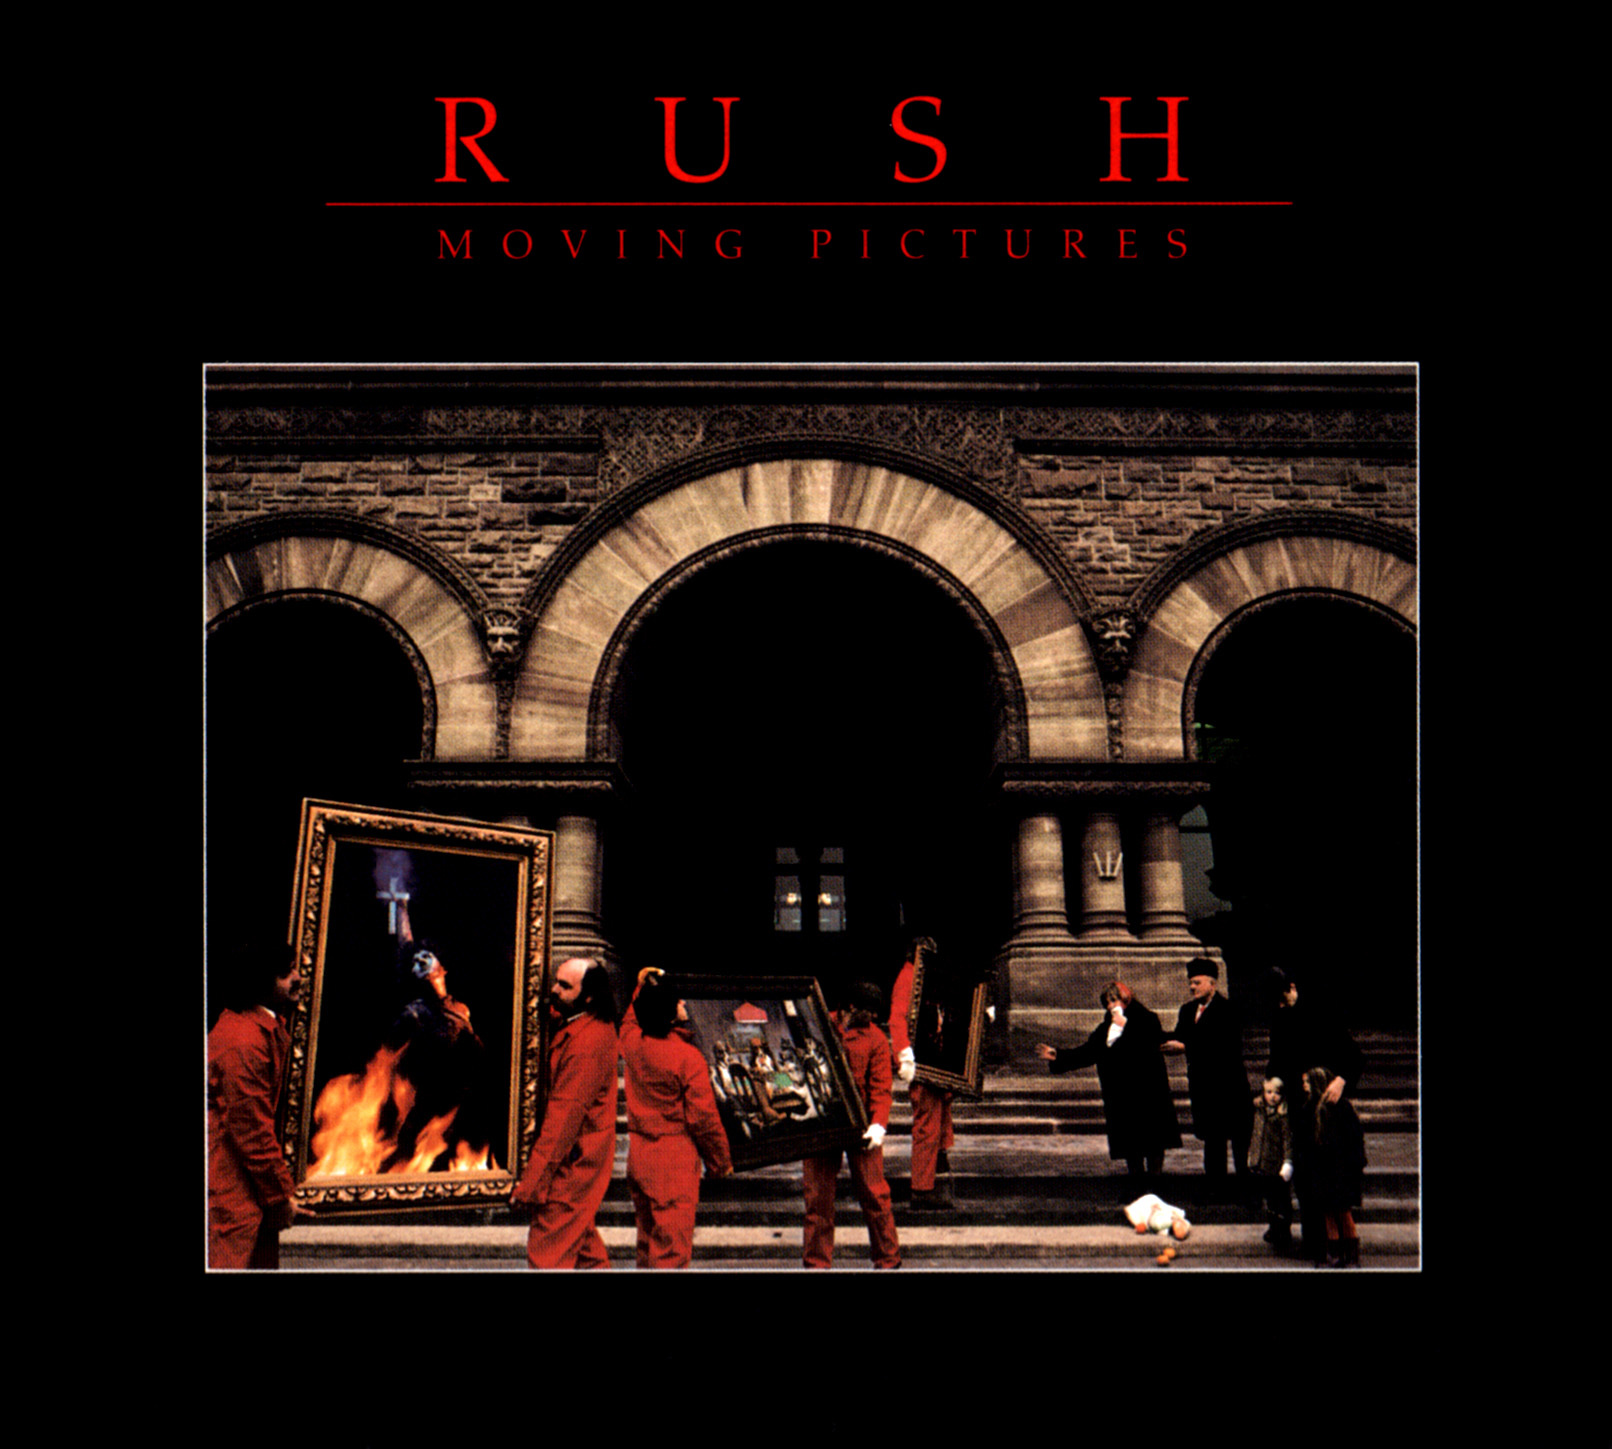 Music review rush moving pictures 1981 bored and dangerous - Rush album covers ...